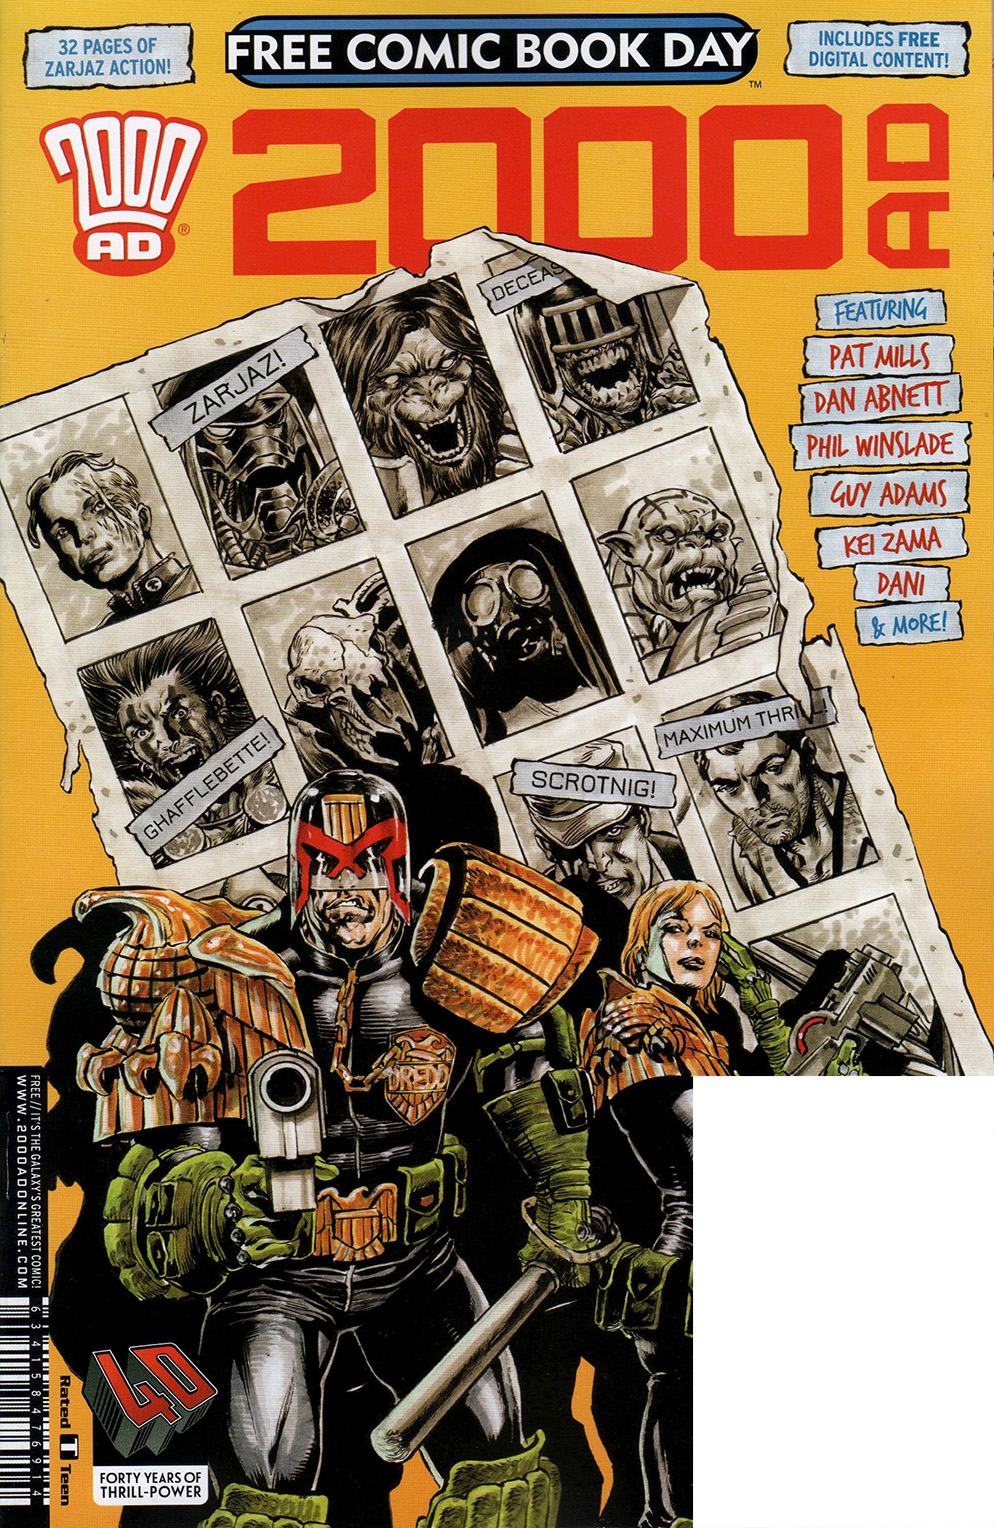 Read online Free Comic Book Day 2017 comic -  Issue # 2000 AD prog - 1